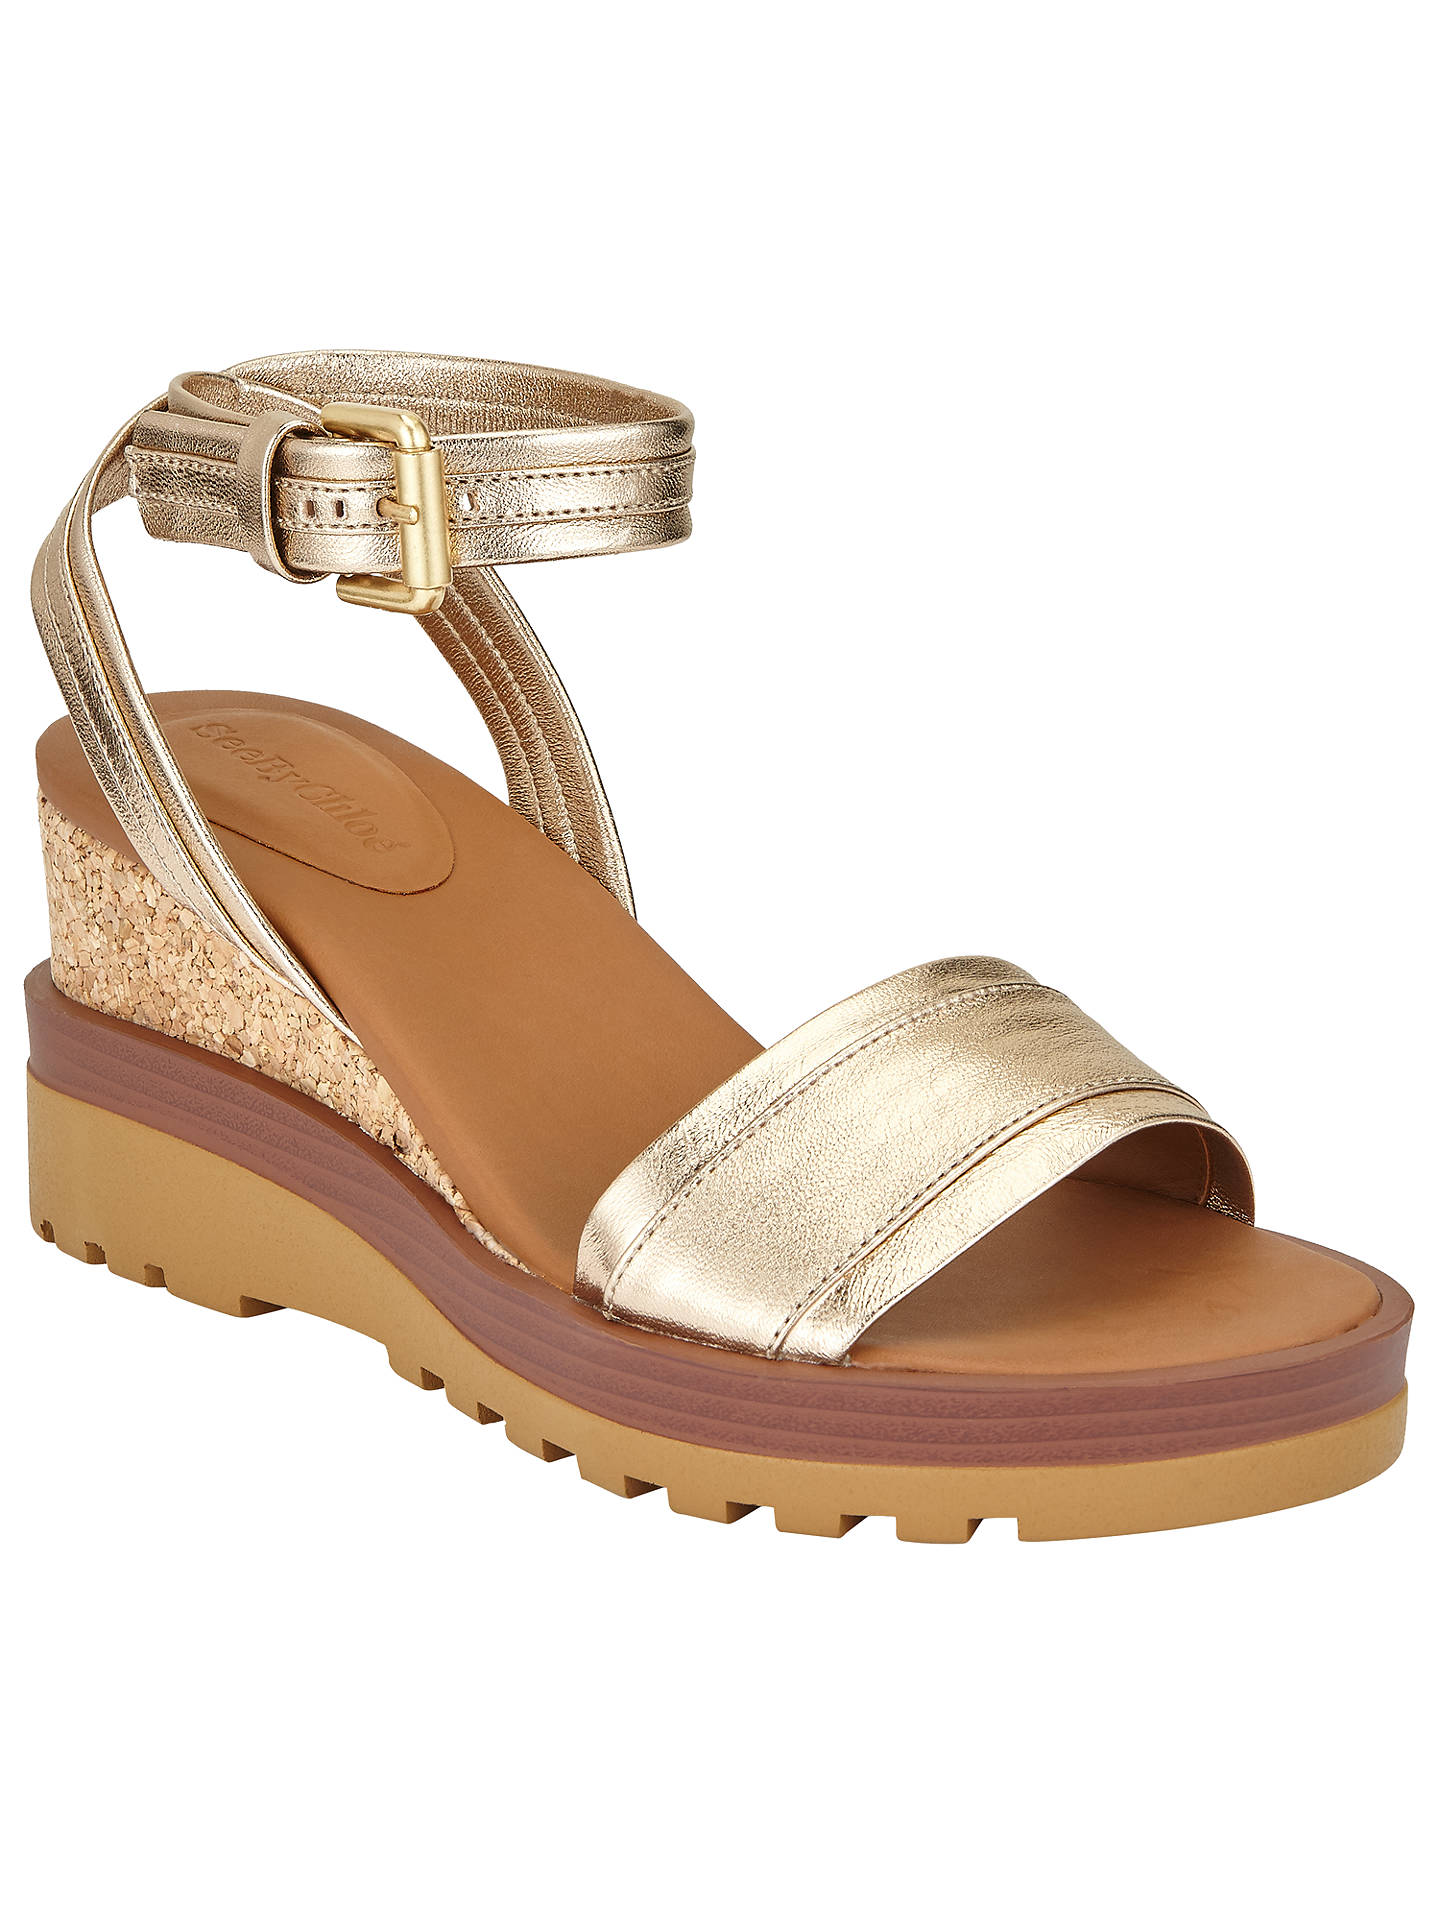 ae99b4320308 Buy See by Chloé Robin Wedge Heeled Sandals